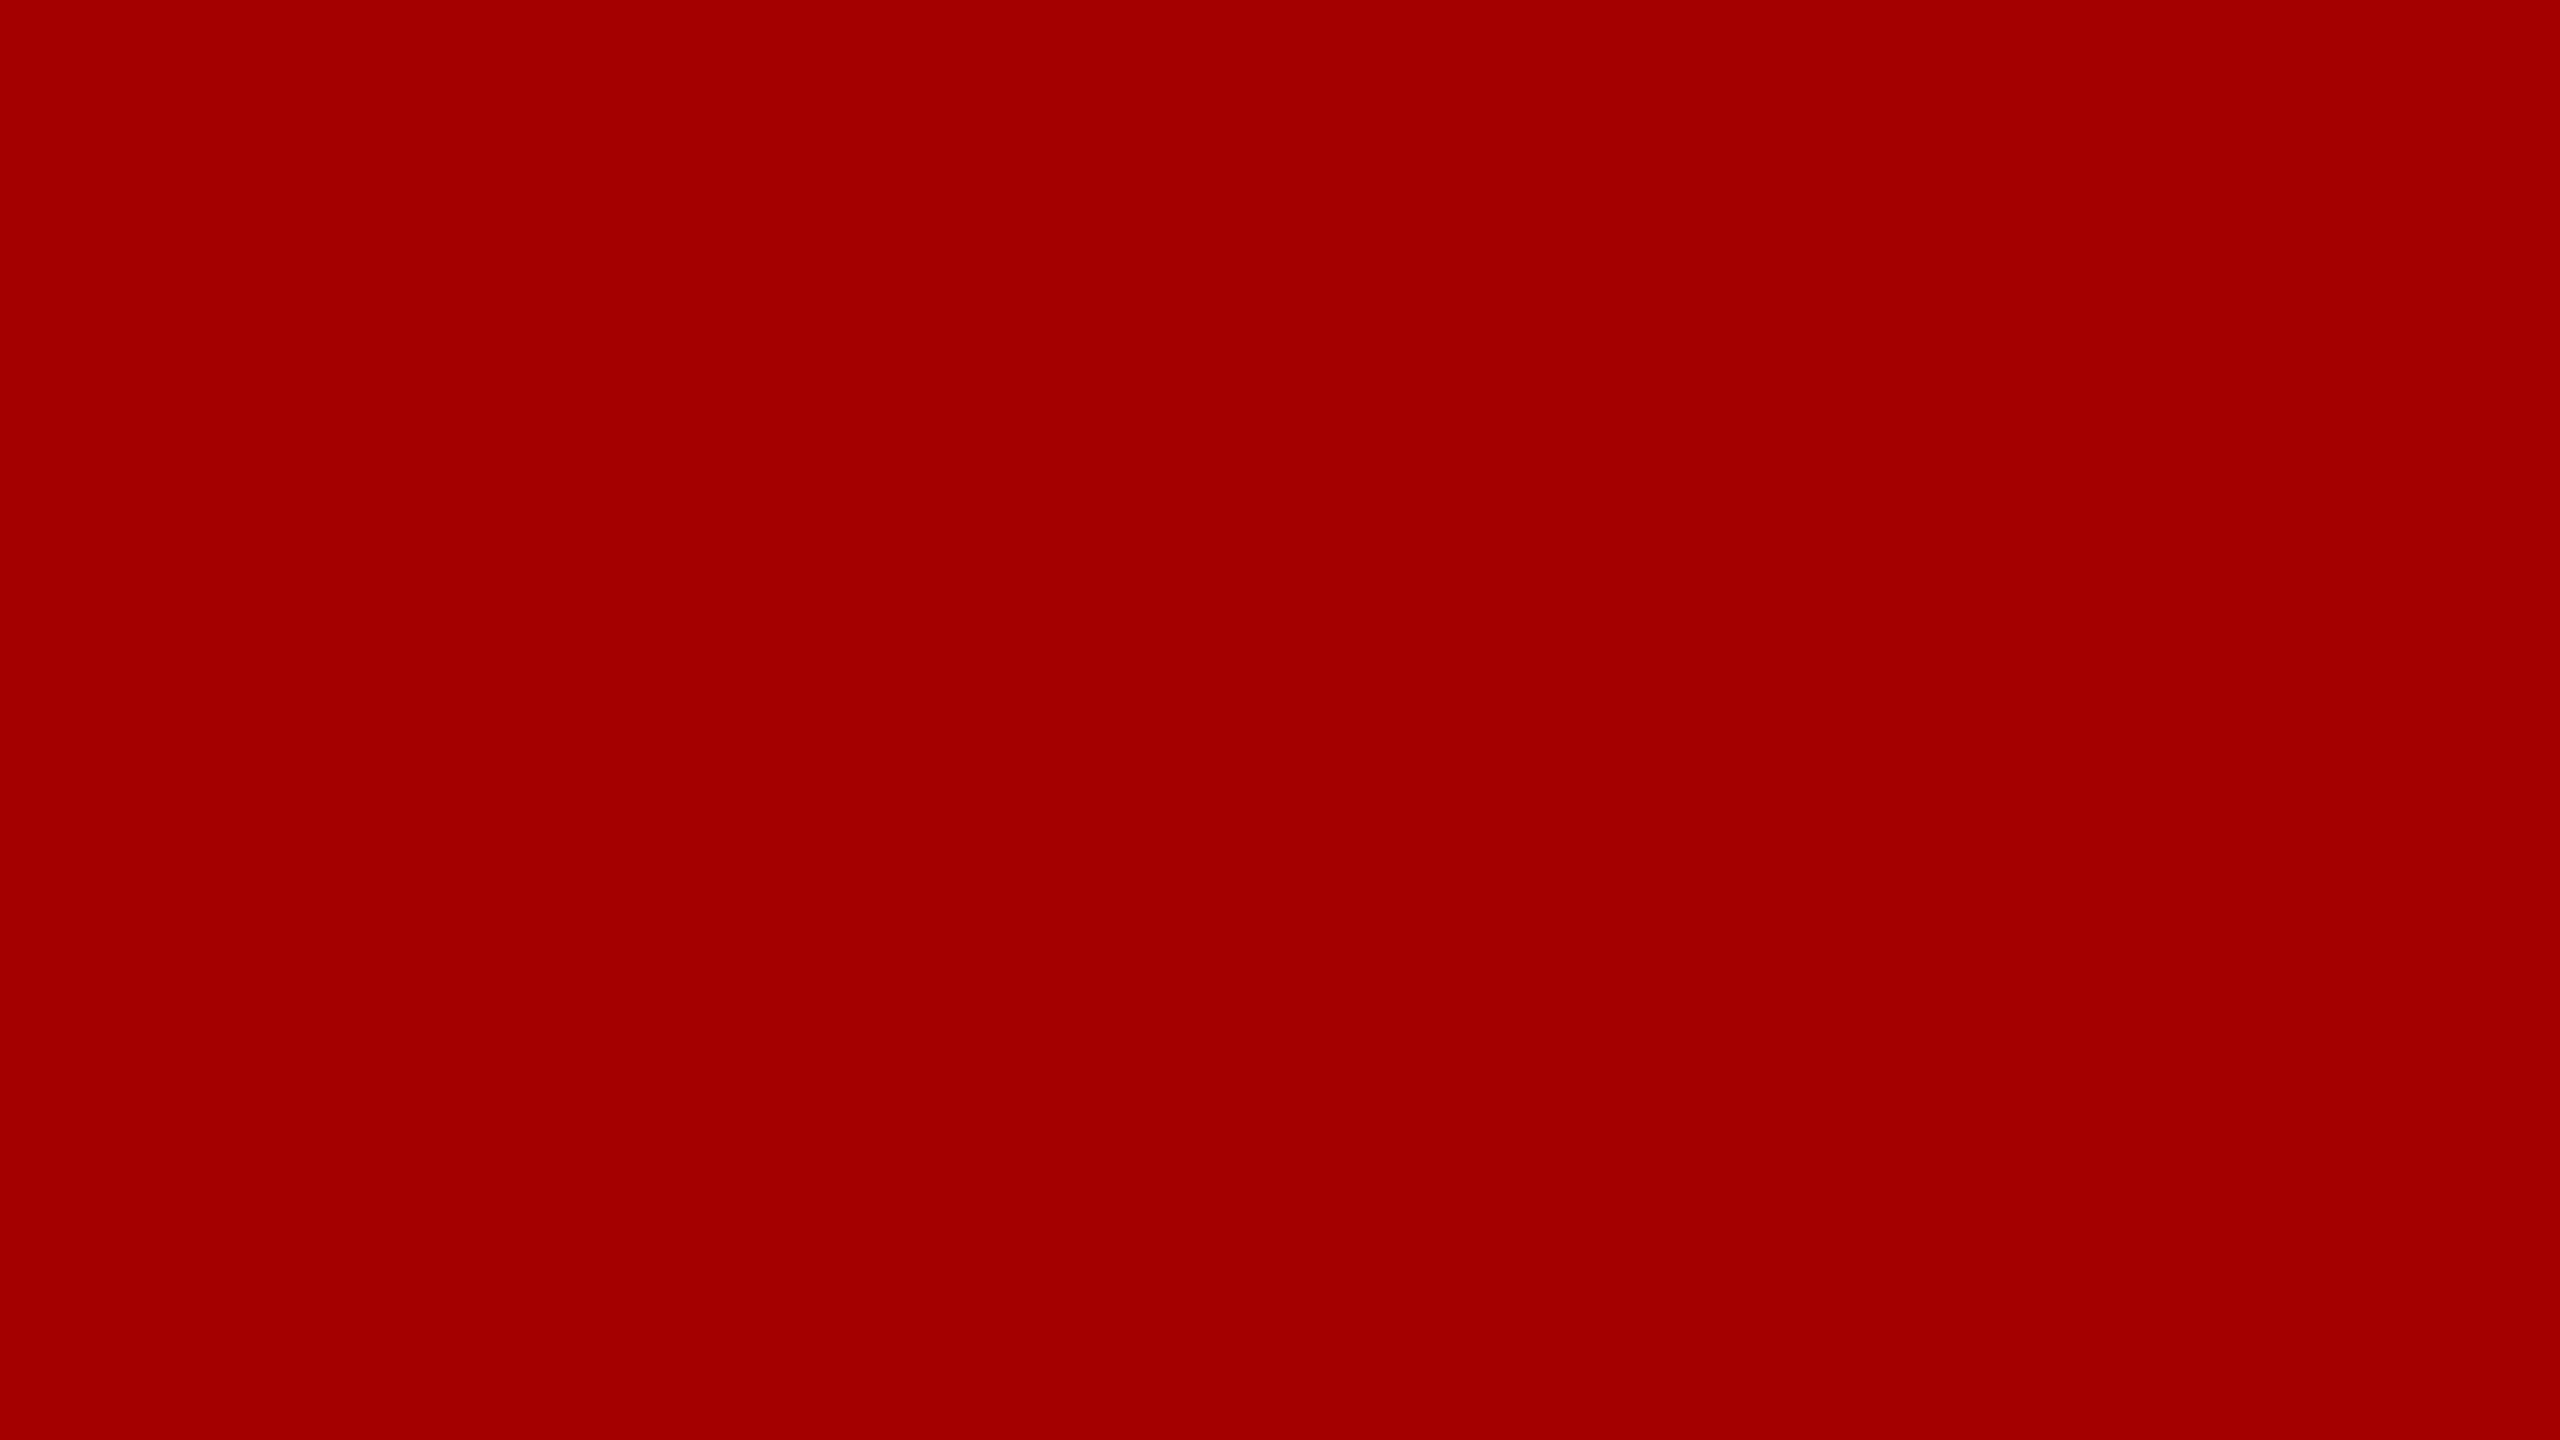 2560x1440 Dark Candy Apple Red Solid Color Background